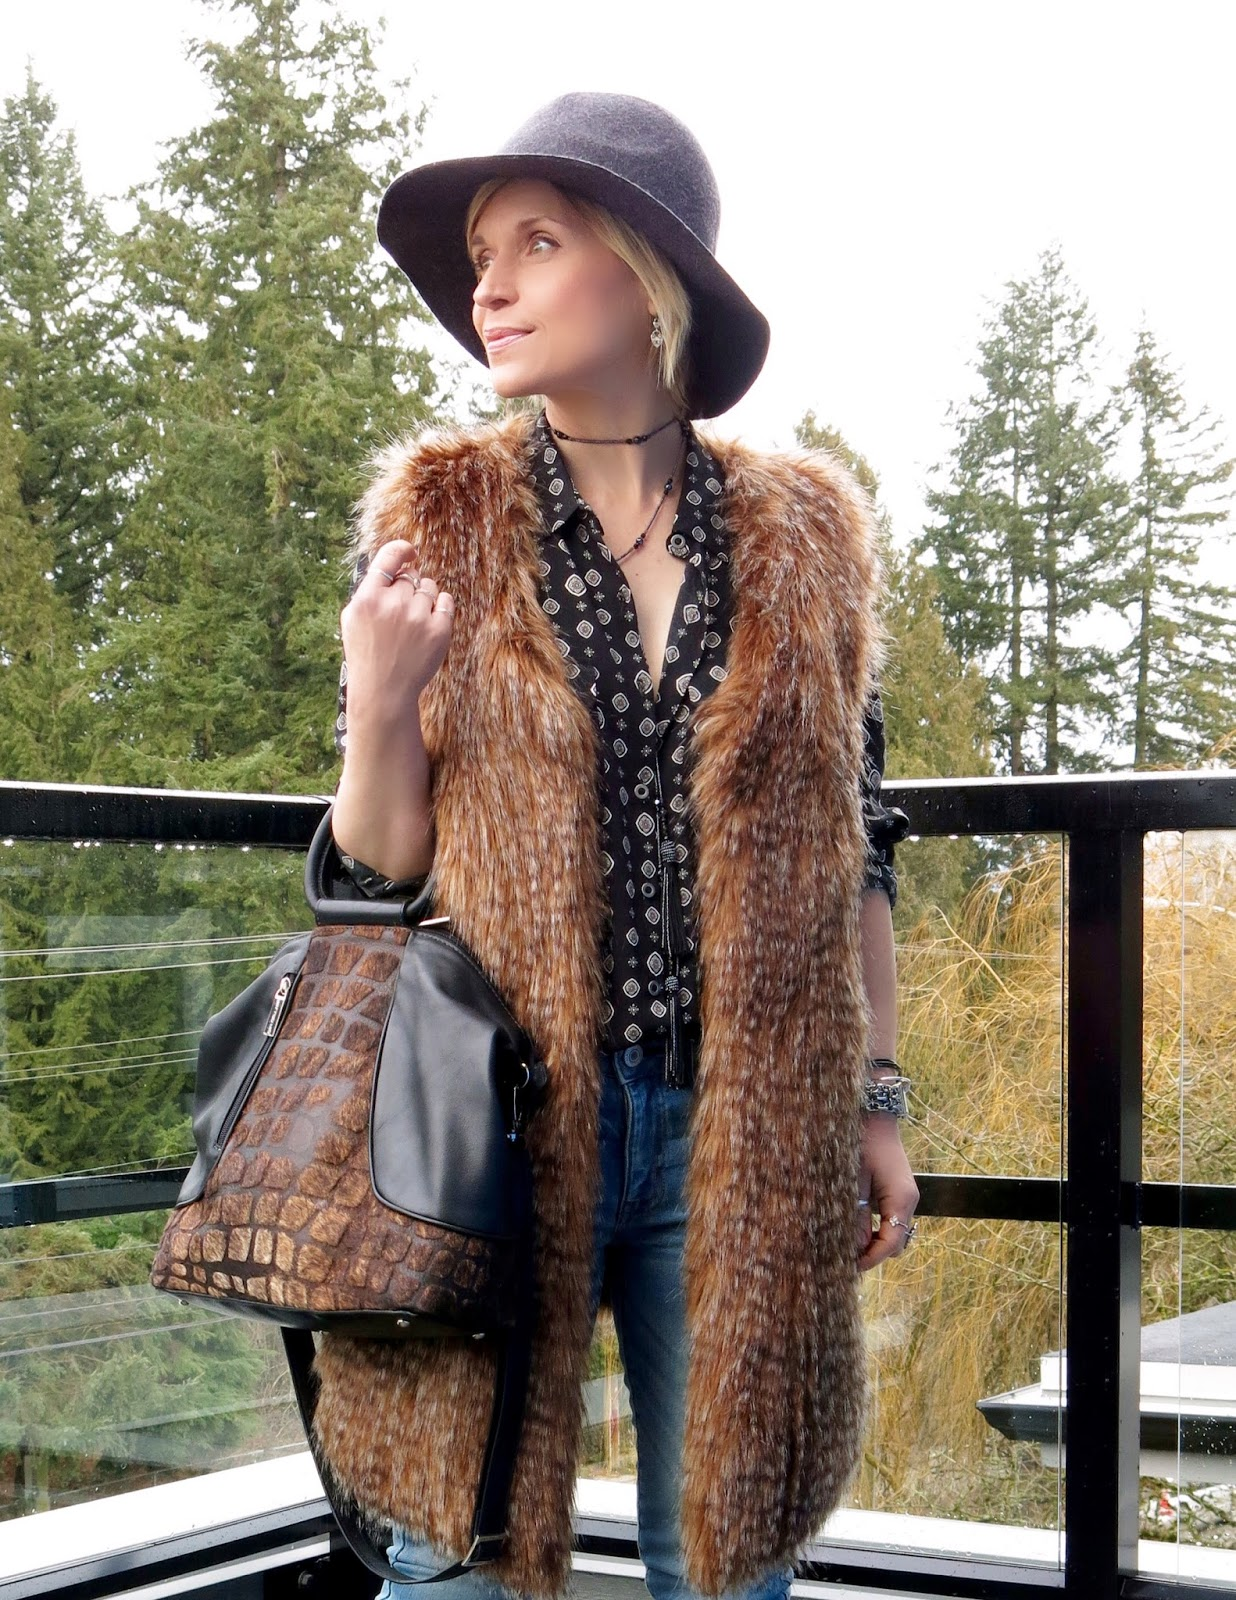 black patterned shirt, long faux-fur vest, Matteo Mio bag, and floppy hat